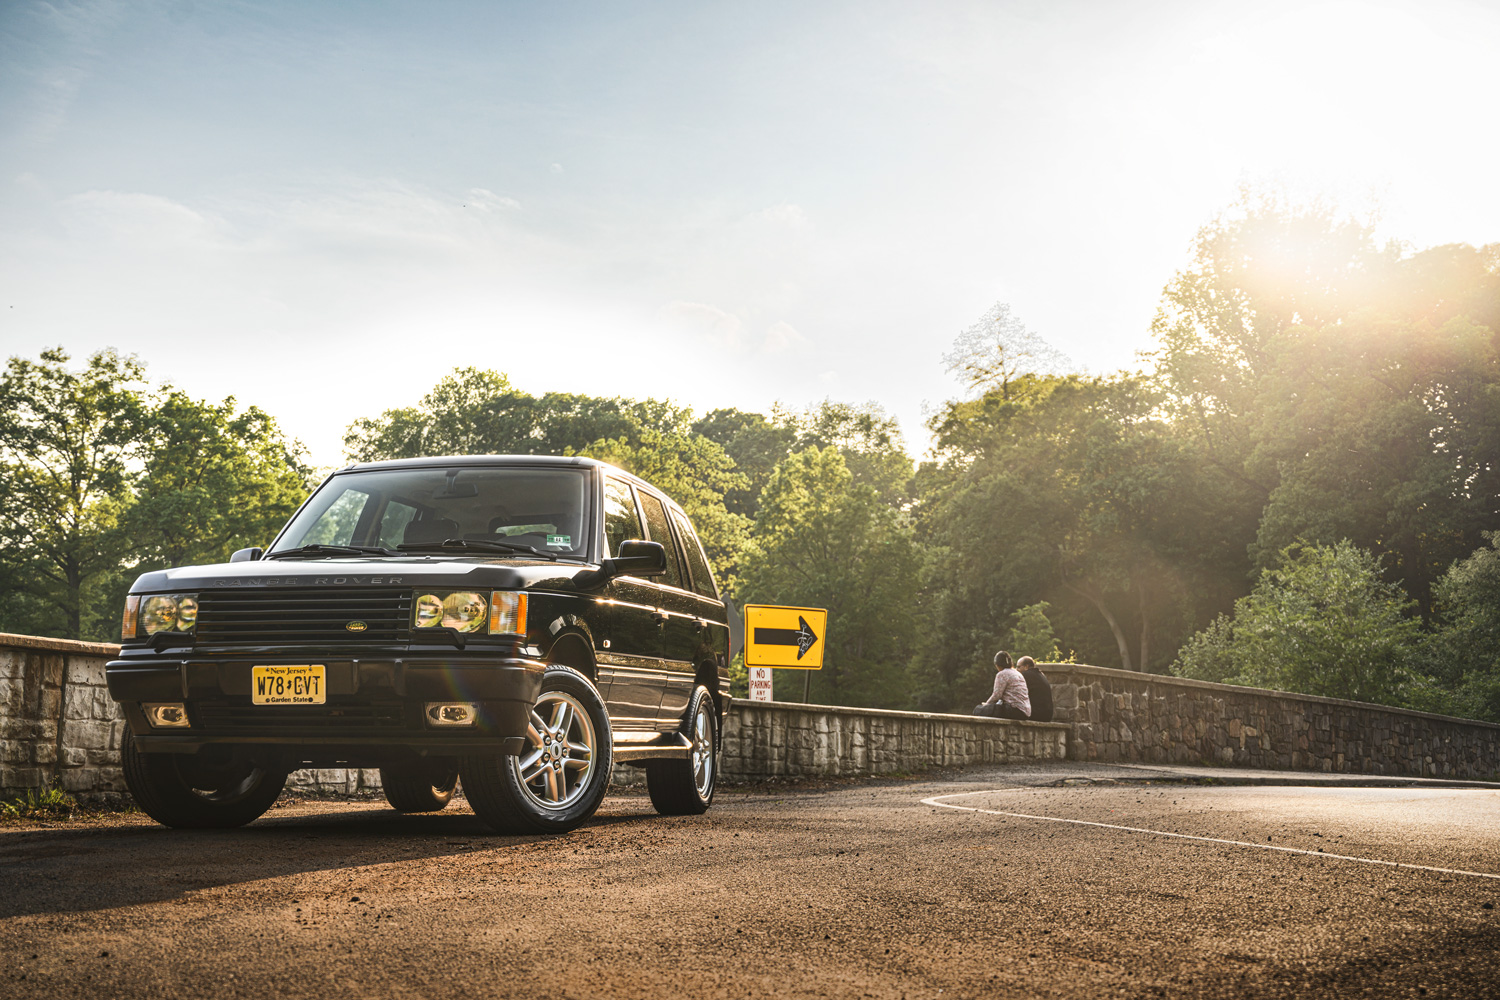 Range Rover Parked